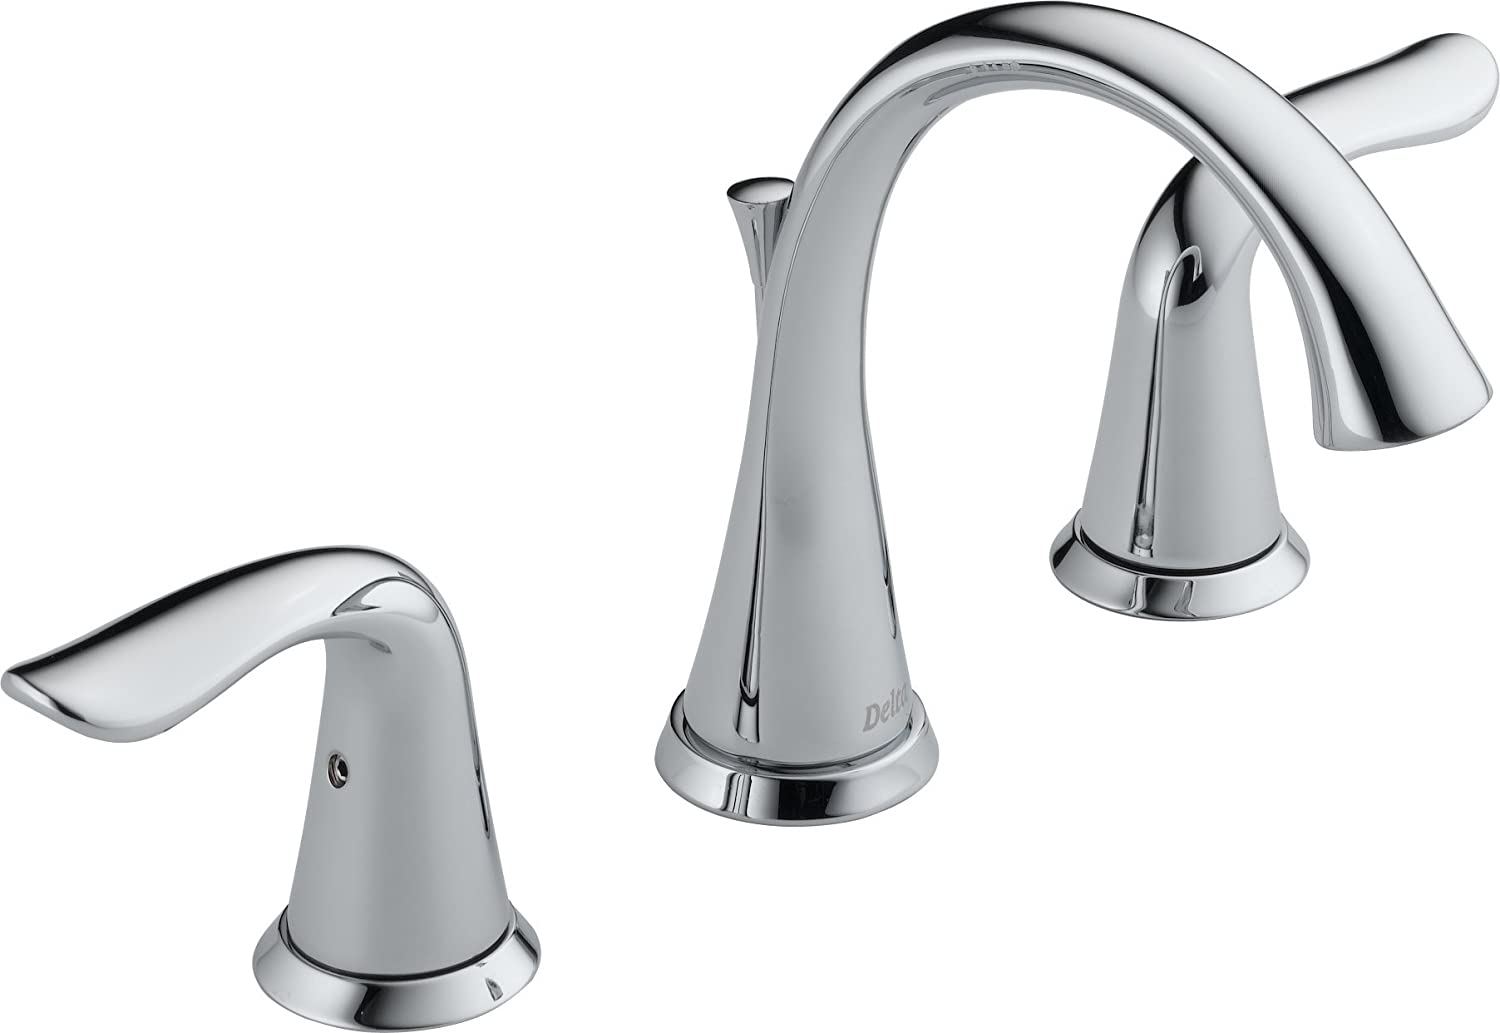 Delta Faucet 3538 MPU DST Lahara Two Handle Widespread Bathroom Faucet,  Chrome   Touch On Bathroom Sink Faucets   Amazon.com